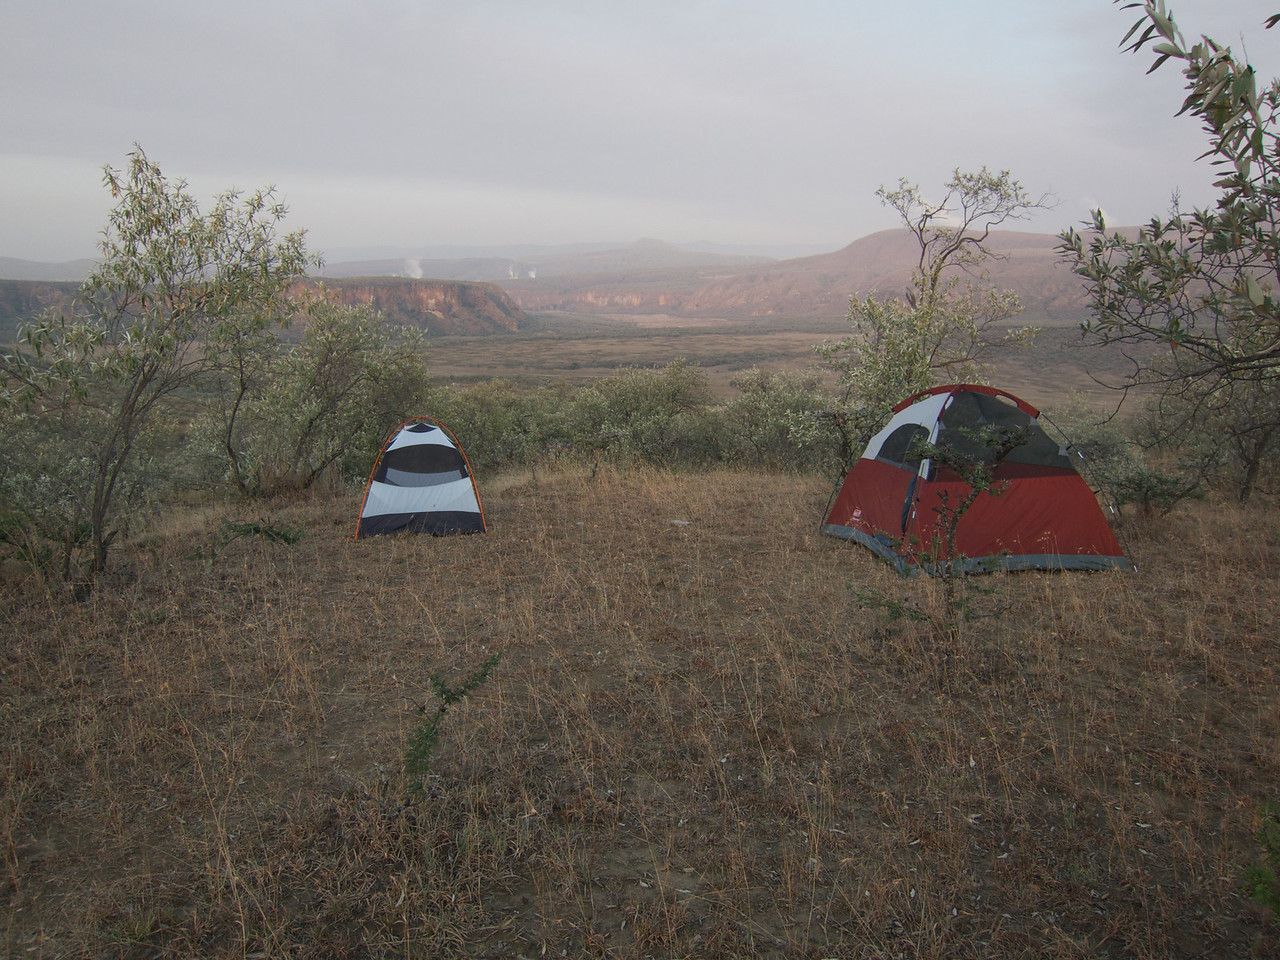 Camping in Hells Gate